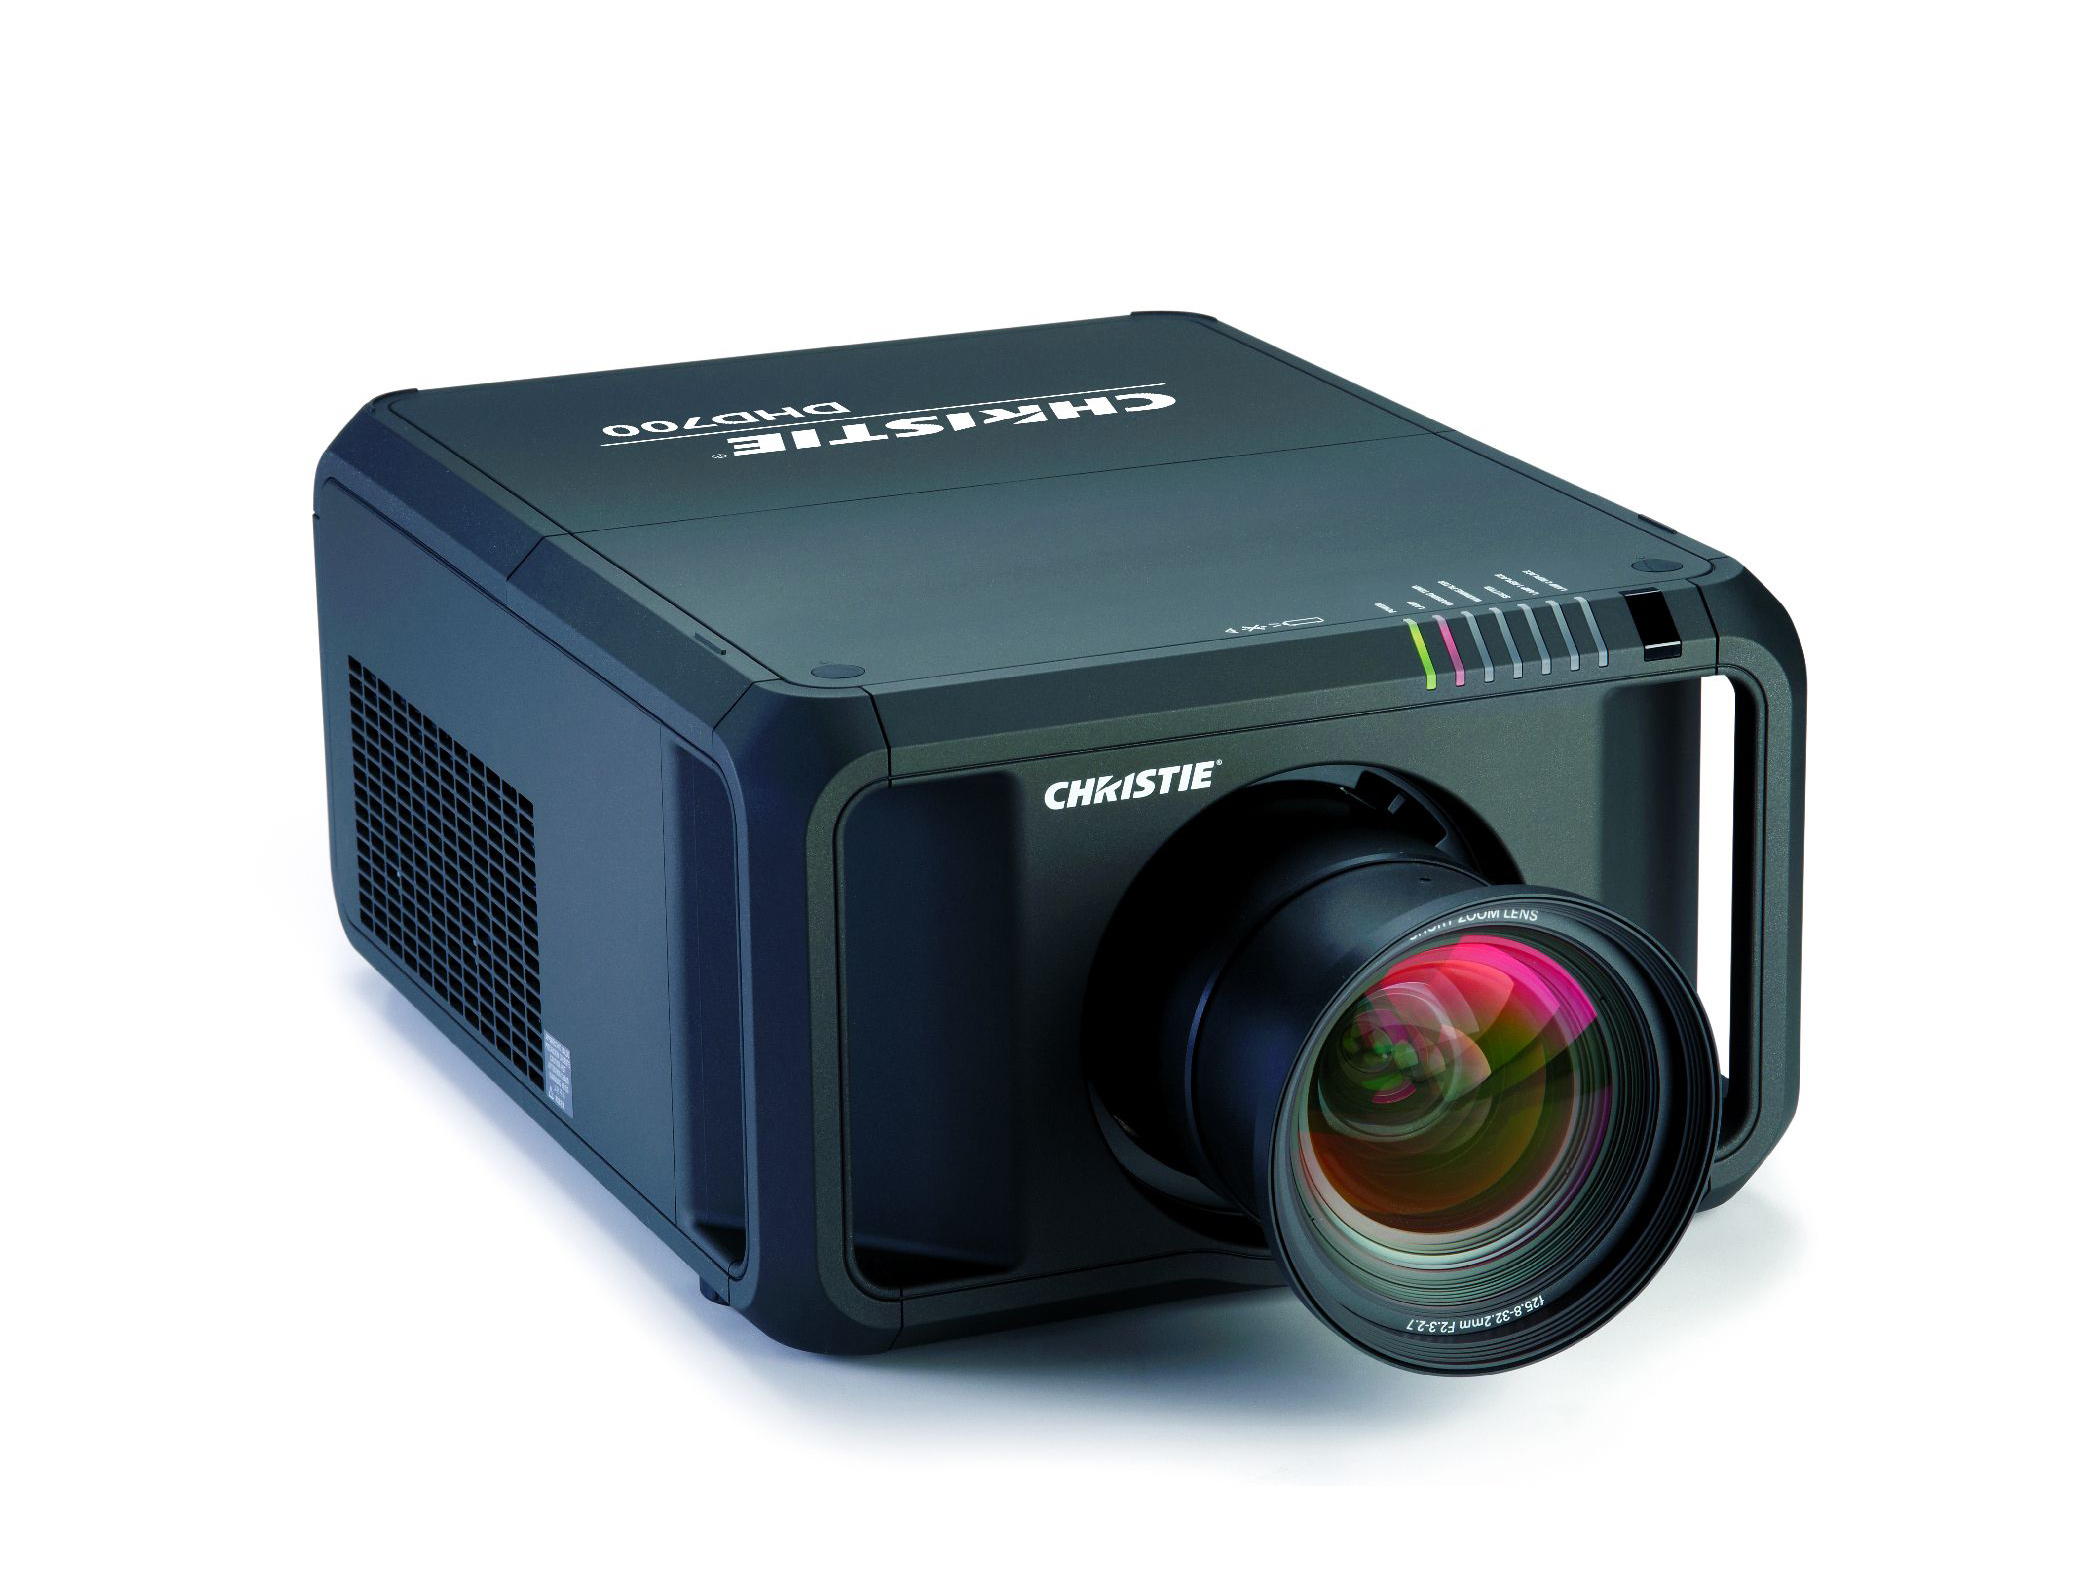 /globalassets/.catalog/products/images/christie-dhd700/gallery/christie-dhd700-1-chip-digital-projector-image8.jpg